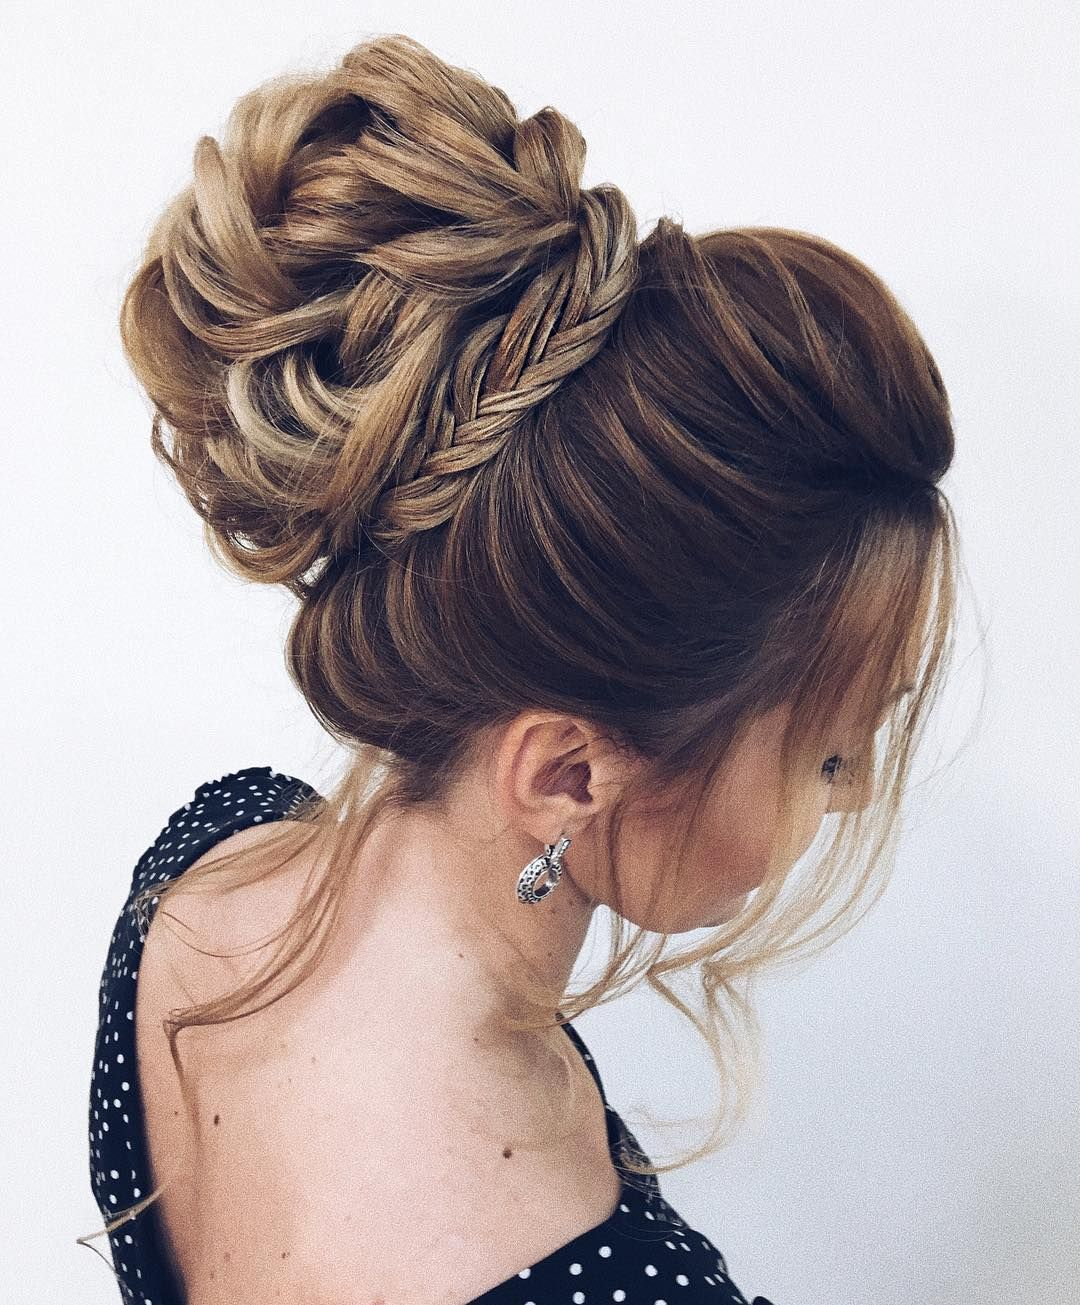 High Bun Hairstyles 55 Amazing Updo Hairstyles With The Wow Factor  High Bun Hairstyles